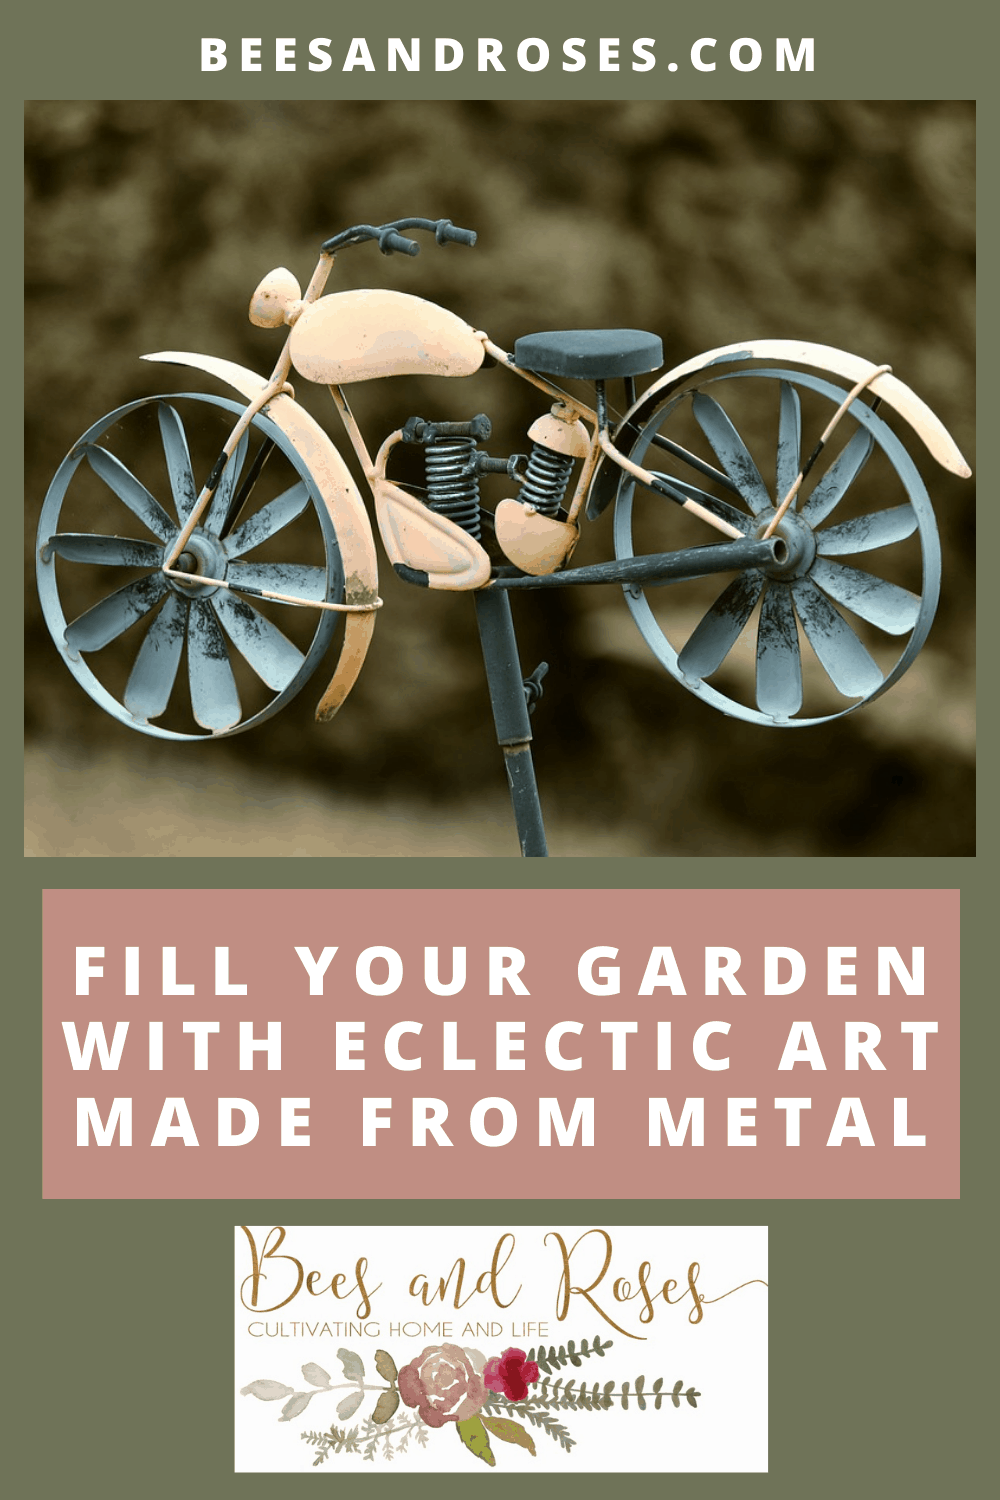 Beesandroses.com is your new guide to all things garden related! Find all all you need to know about growing healthy, thriving plants! Add some flair to your garden with this amazing metal garden art!